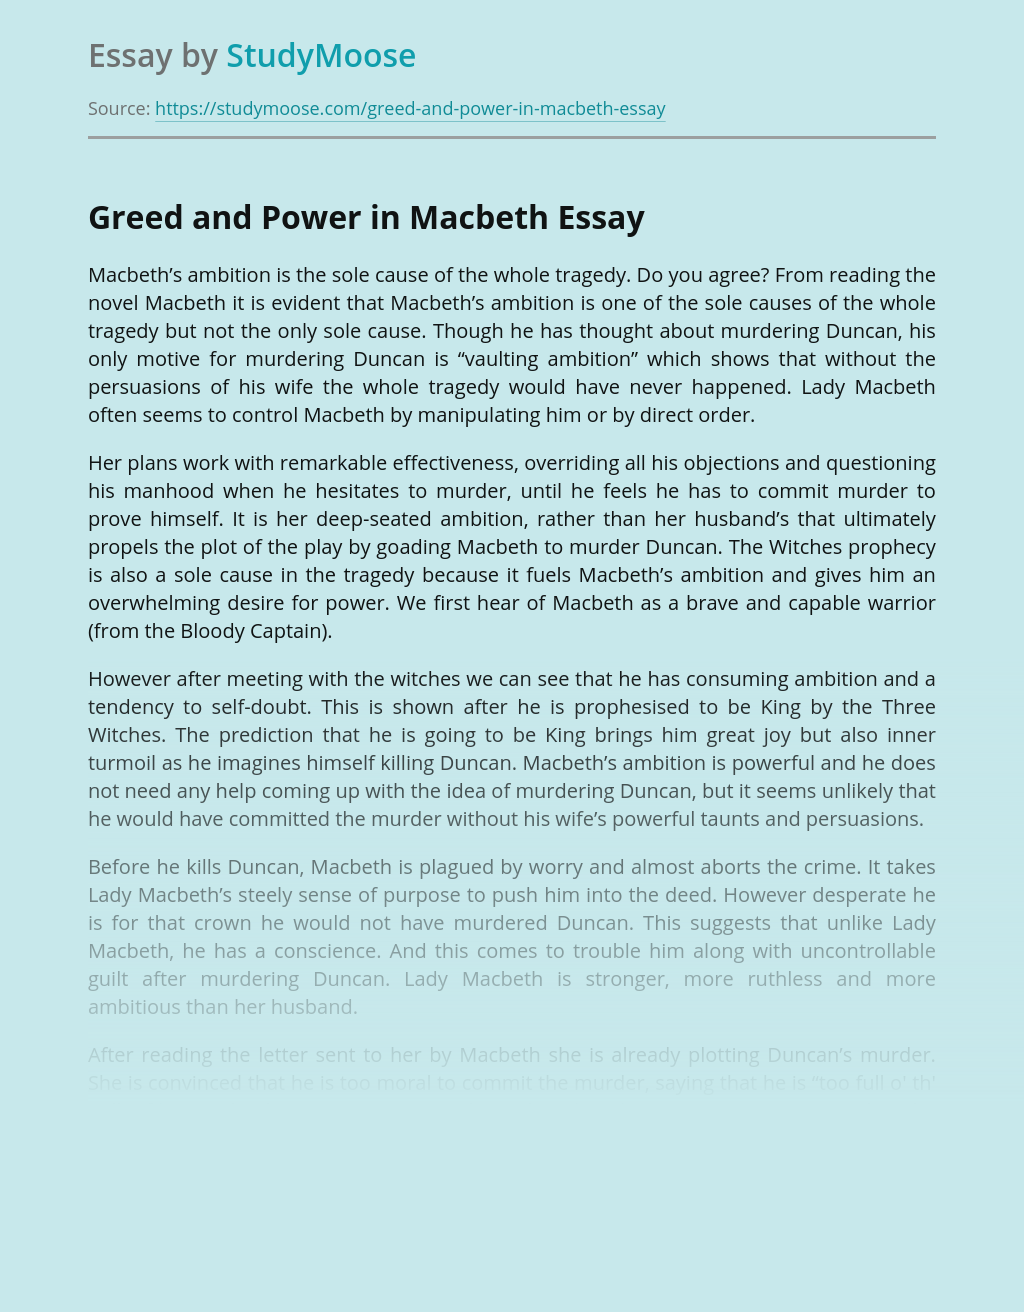 Greed and Power in Macbeth